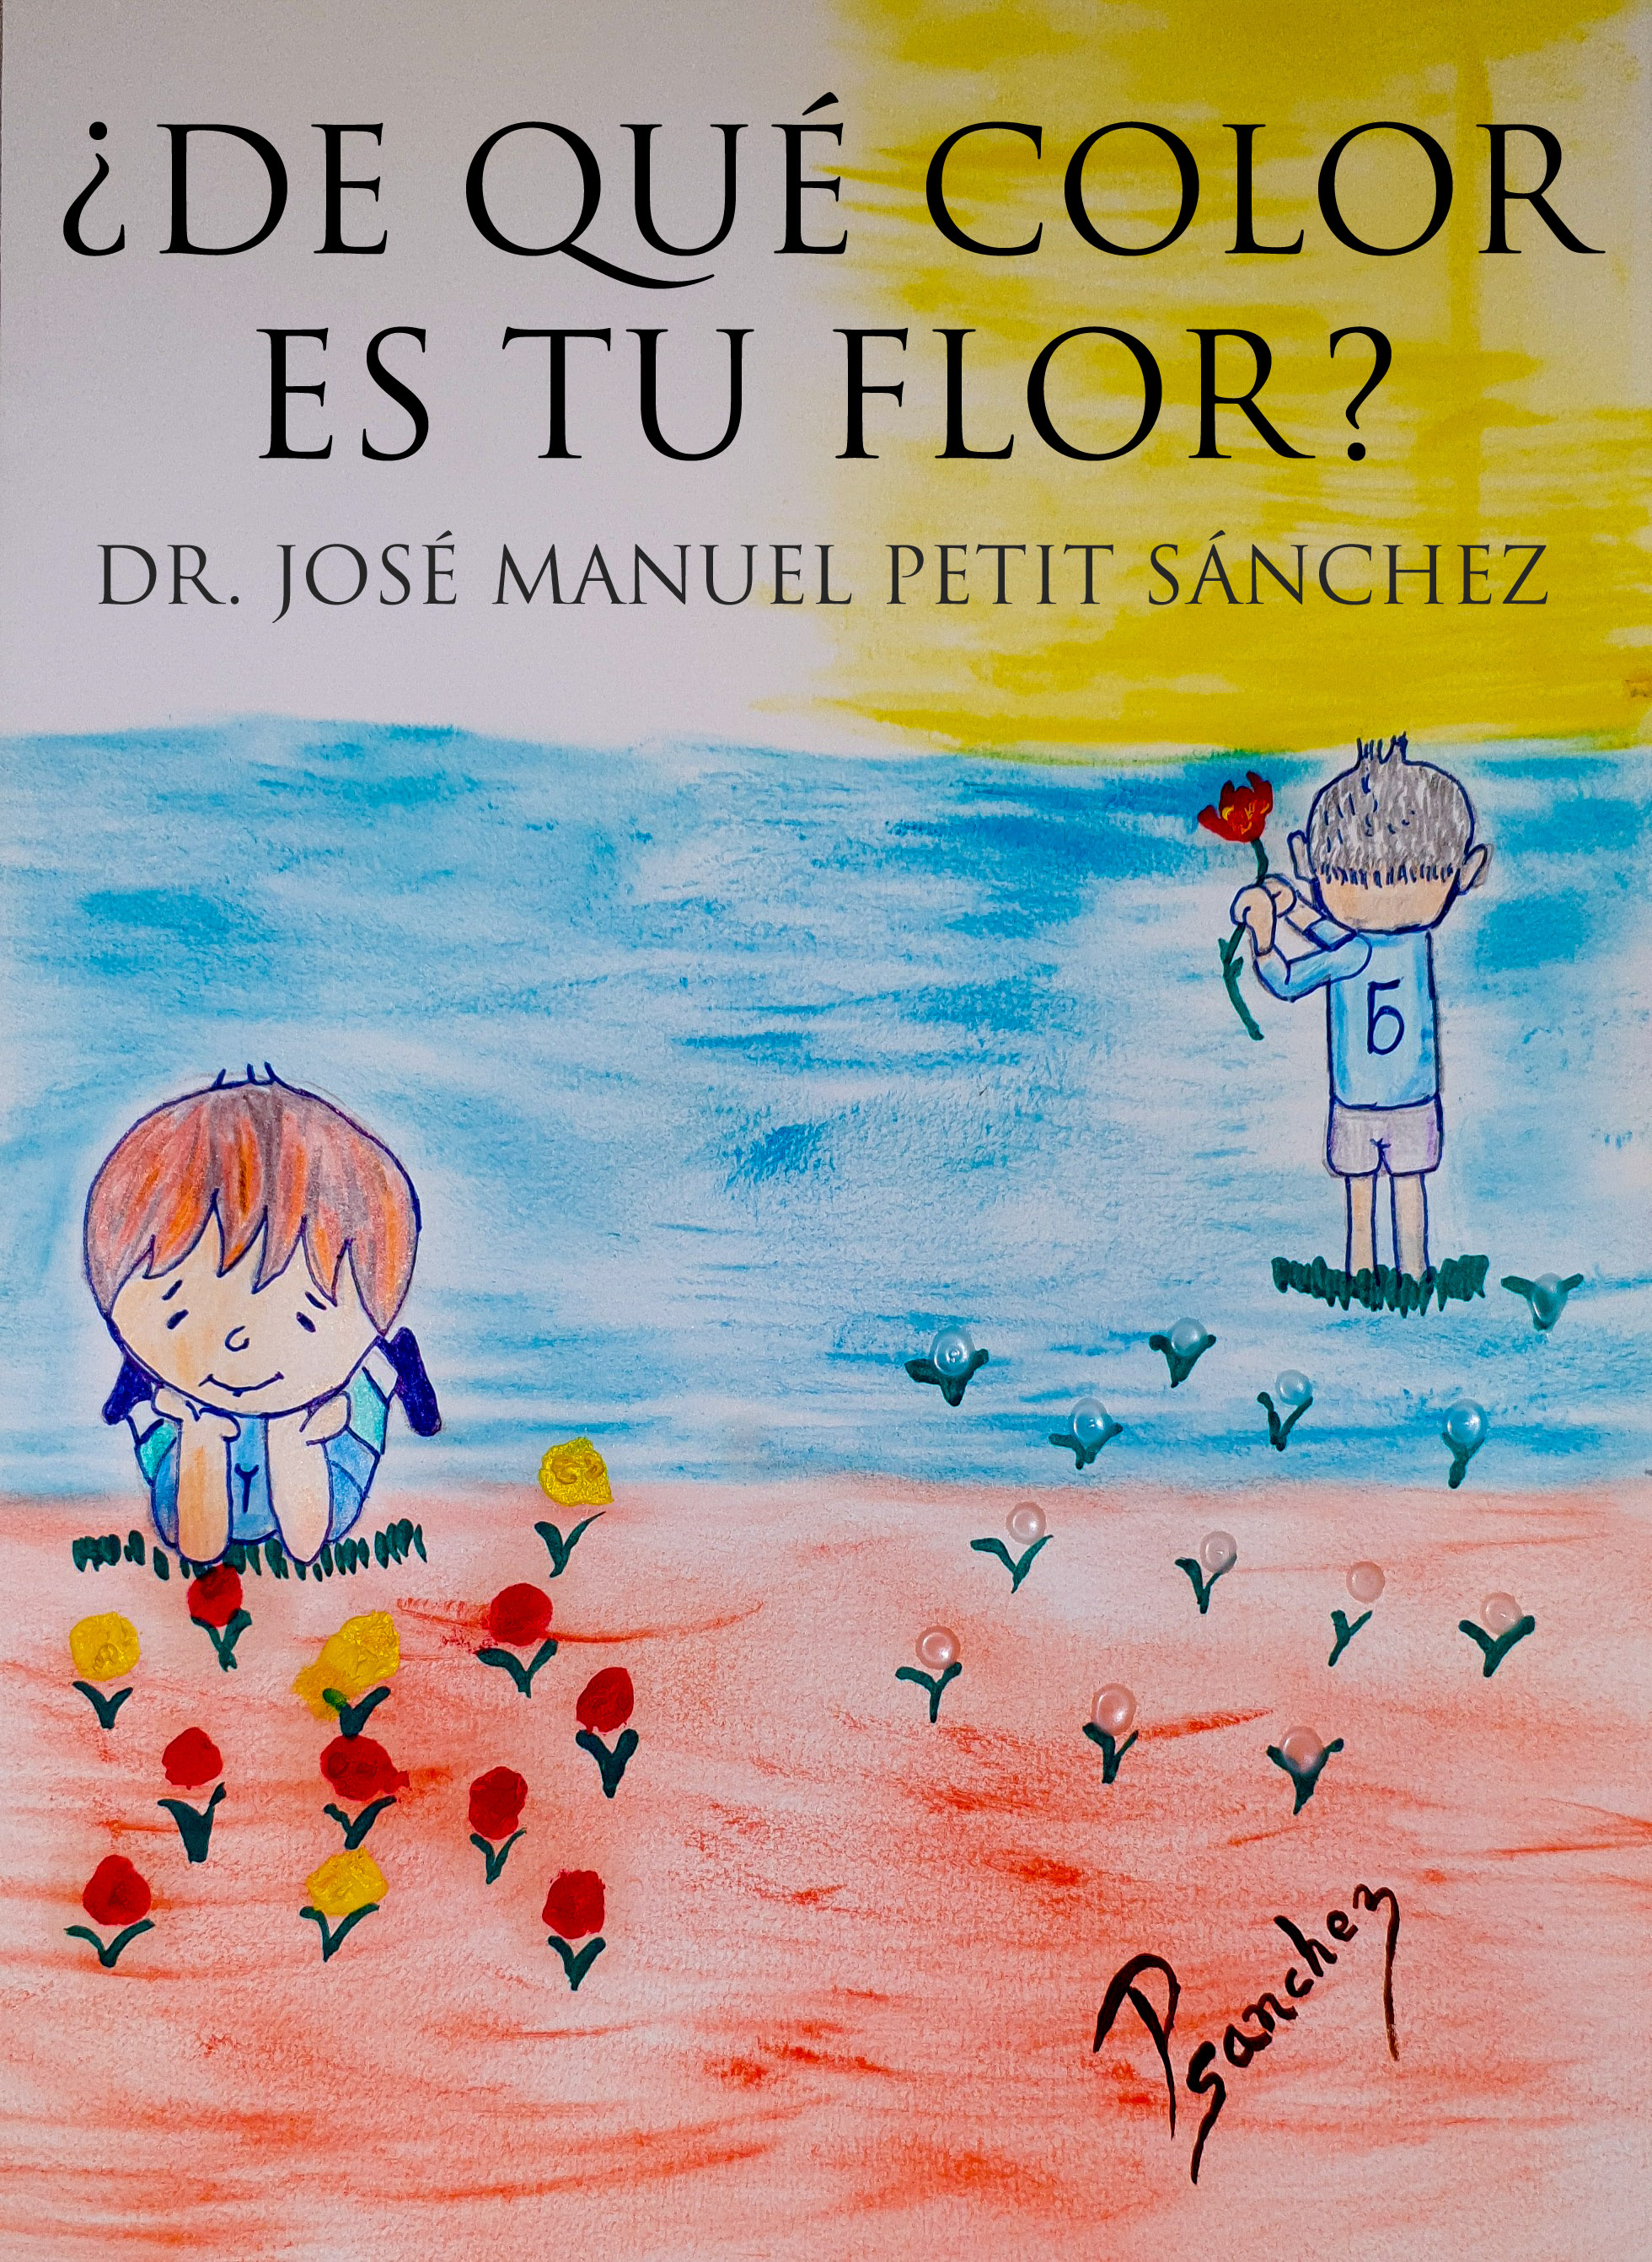 ¿De qué color es tu flor?